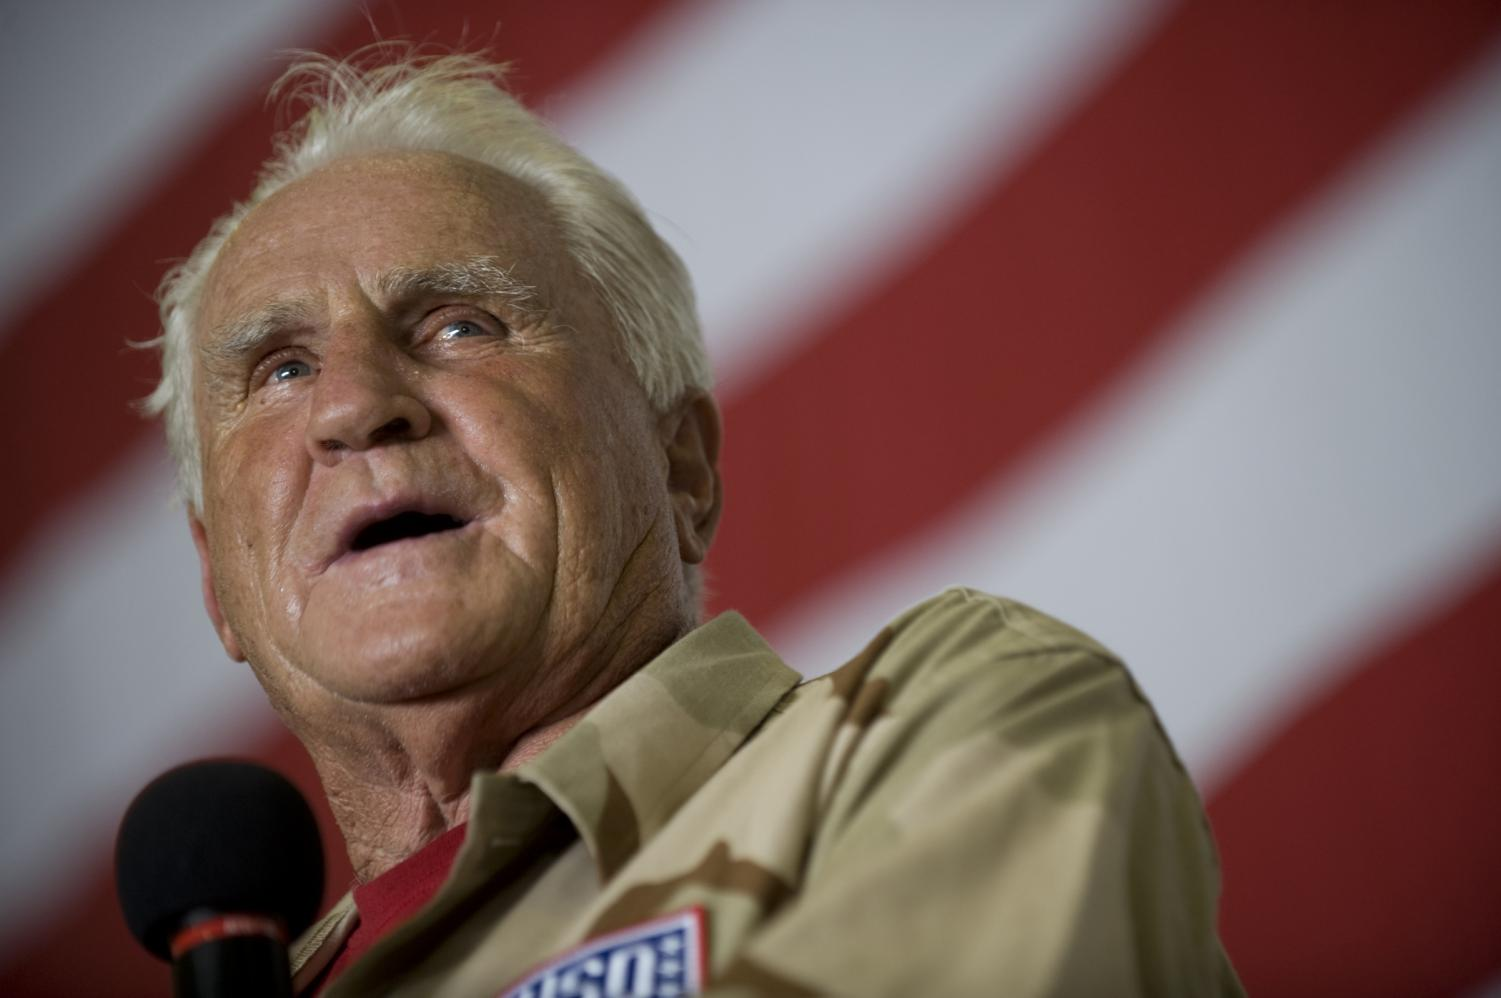 Don Shula set the record for most wins by a head coach on this day in 1993